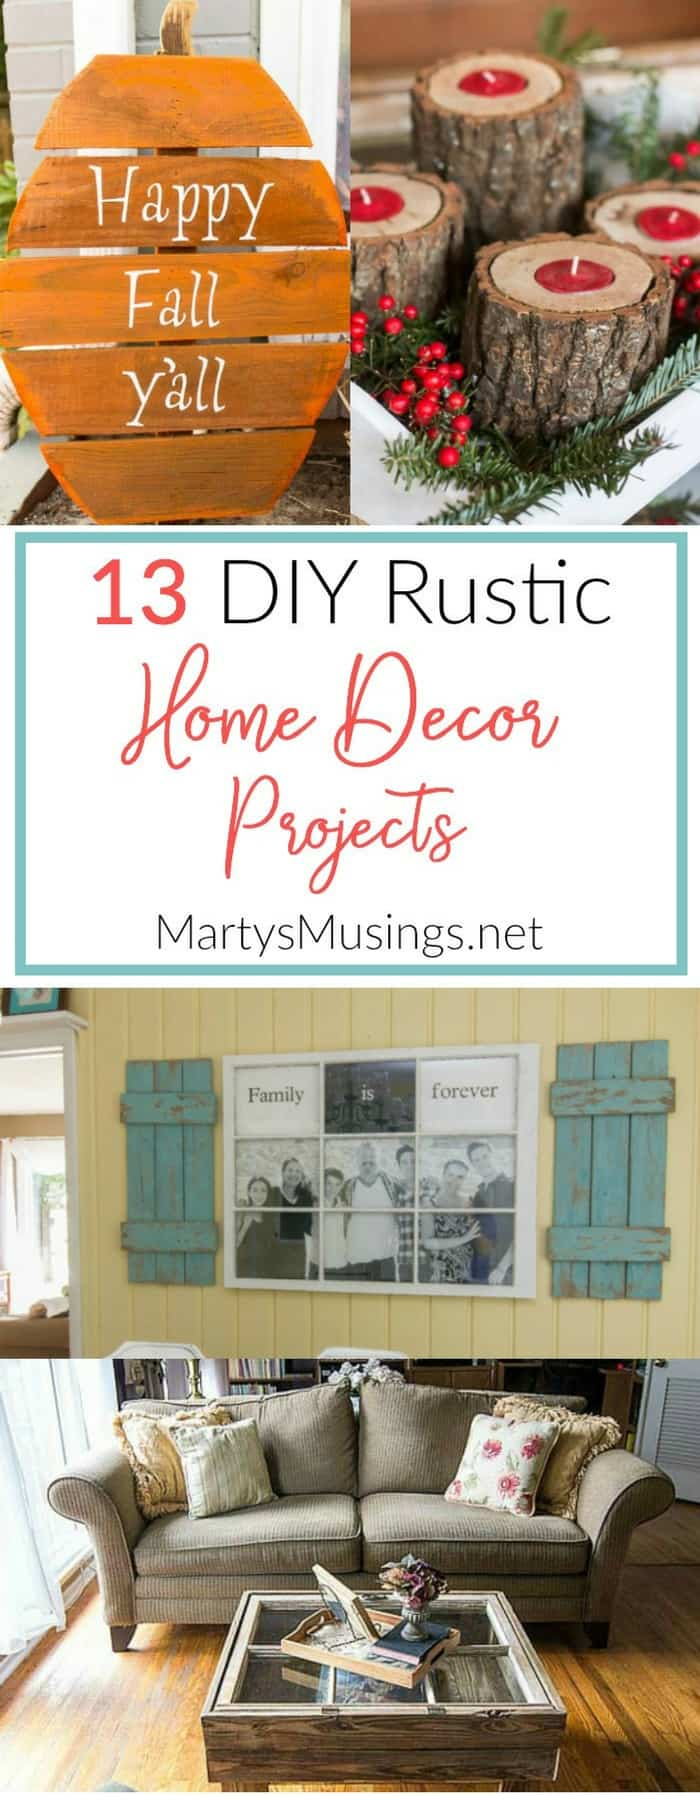 Fullsize Of Diy Home Decorating Projects